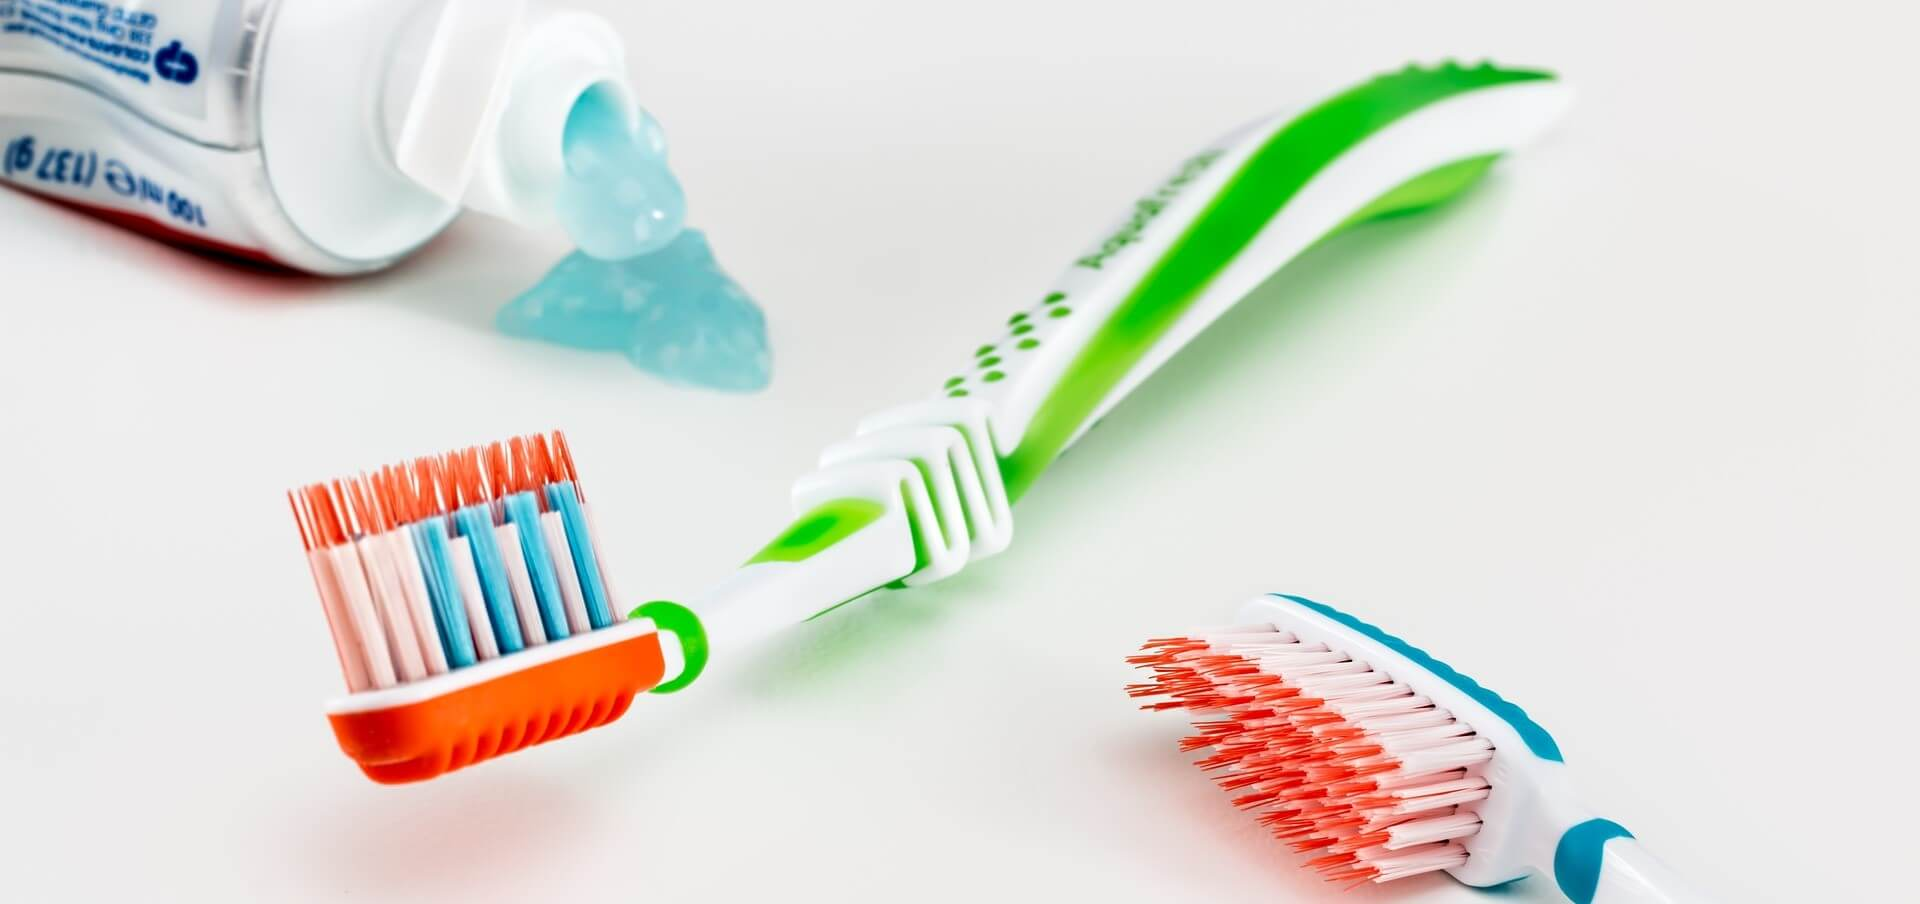 brosses à dents et dentifrice